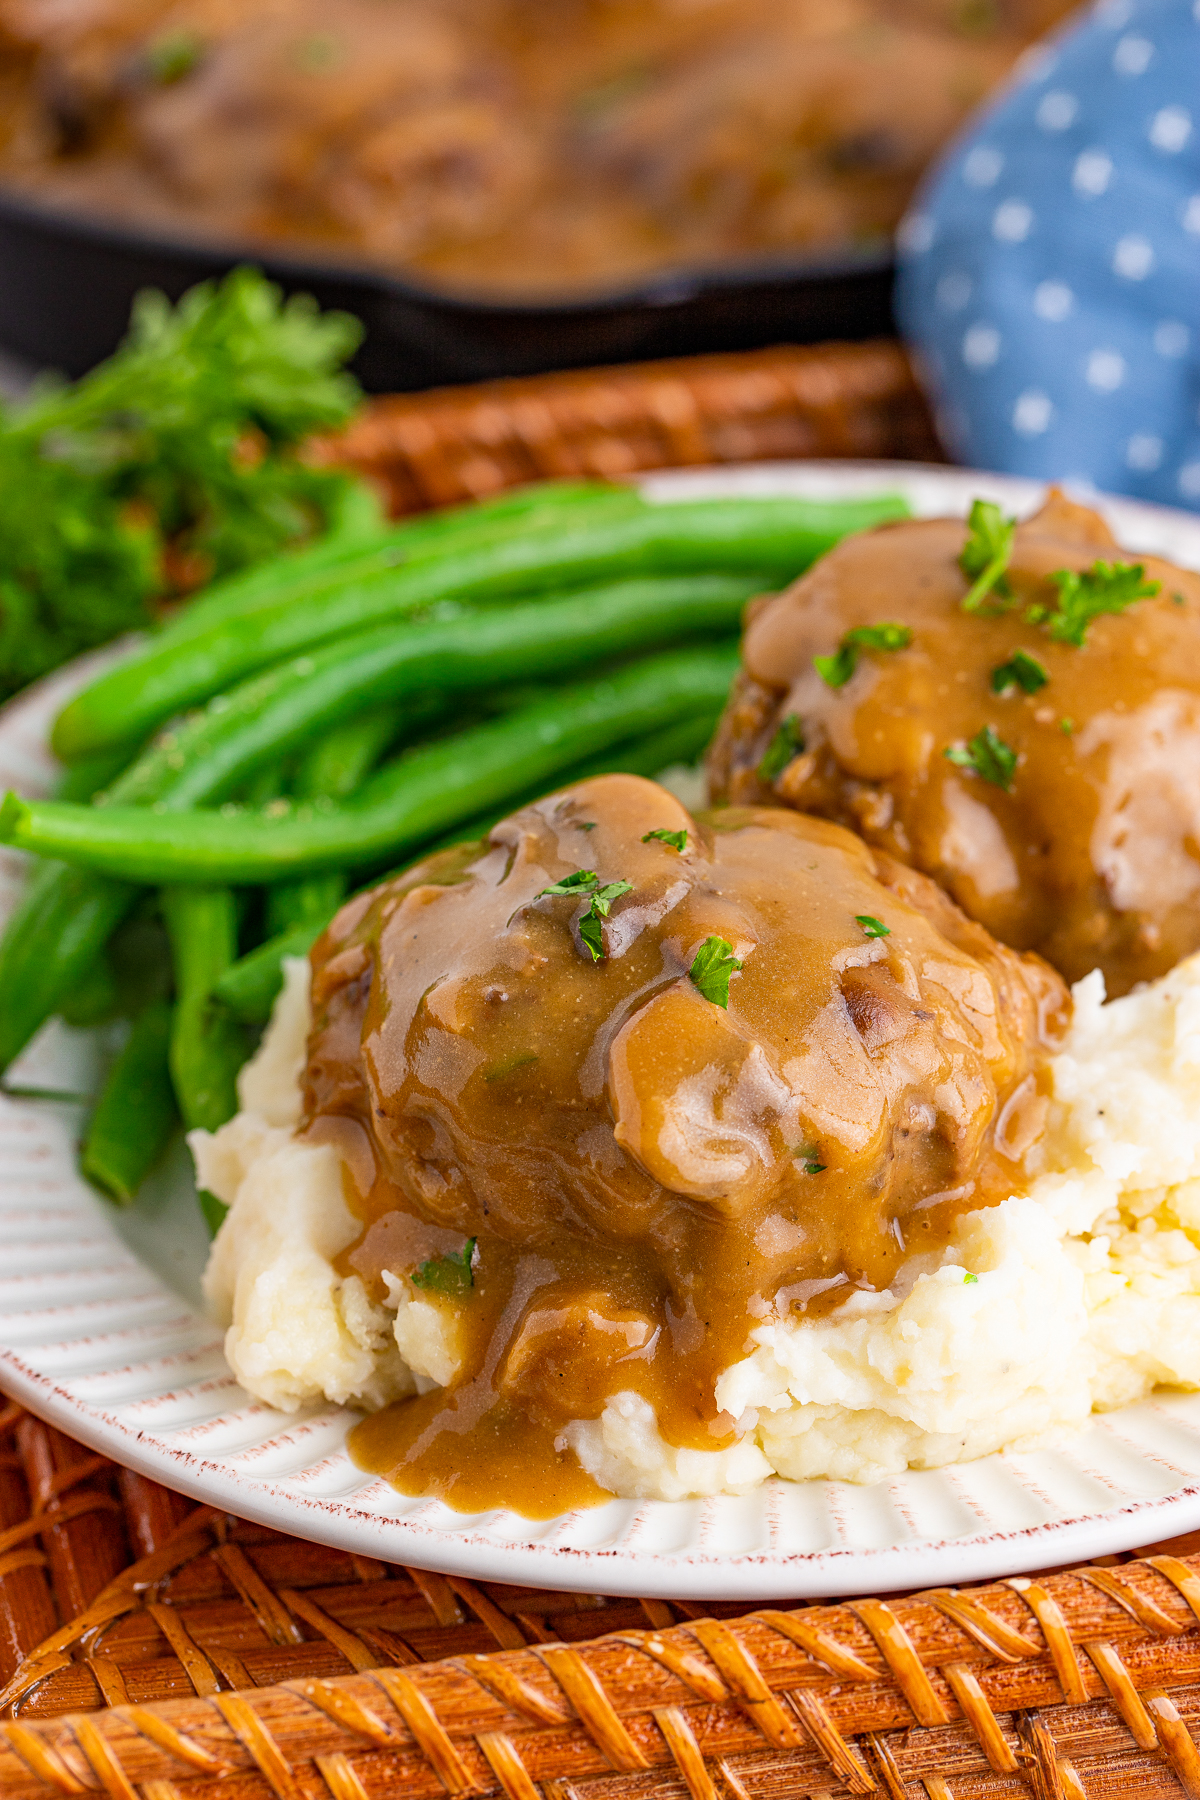 Salisbury Steak Recipe over potatoes with gravy and green beans on plate.